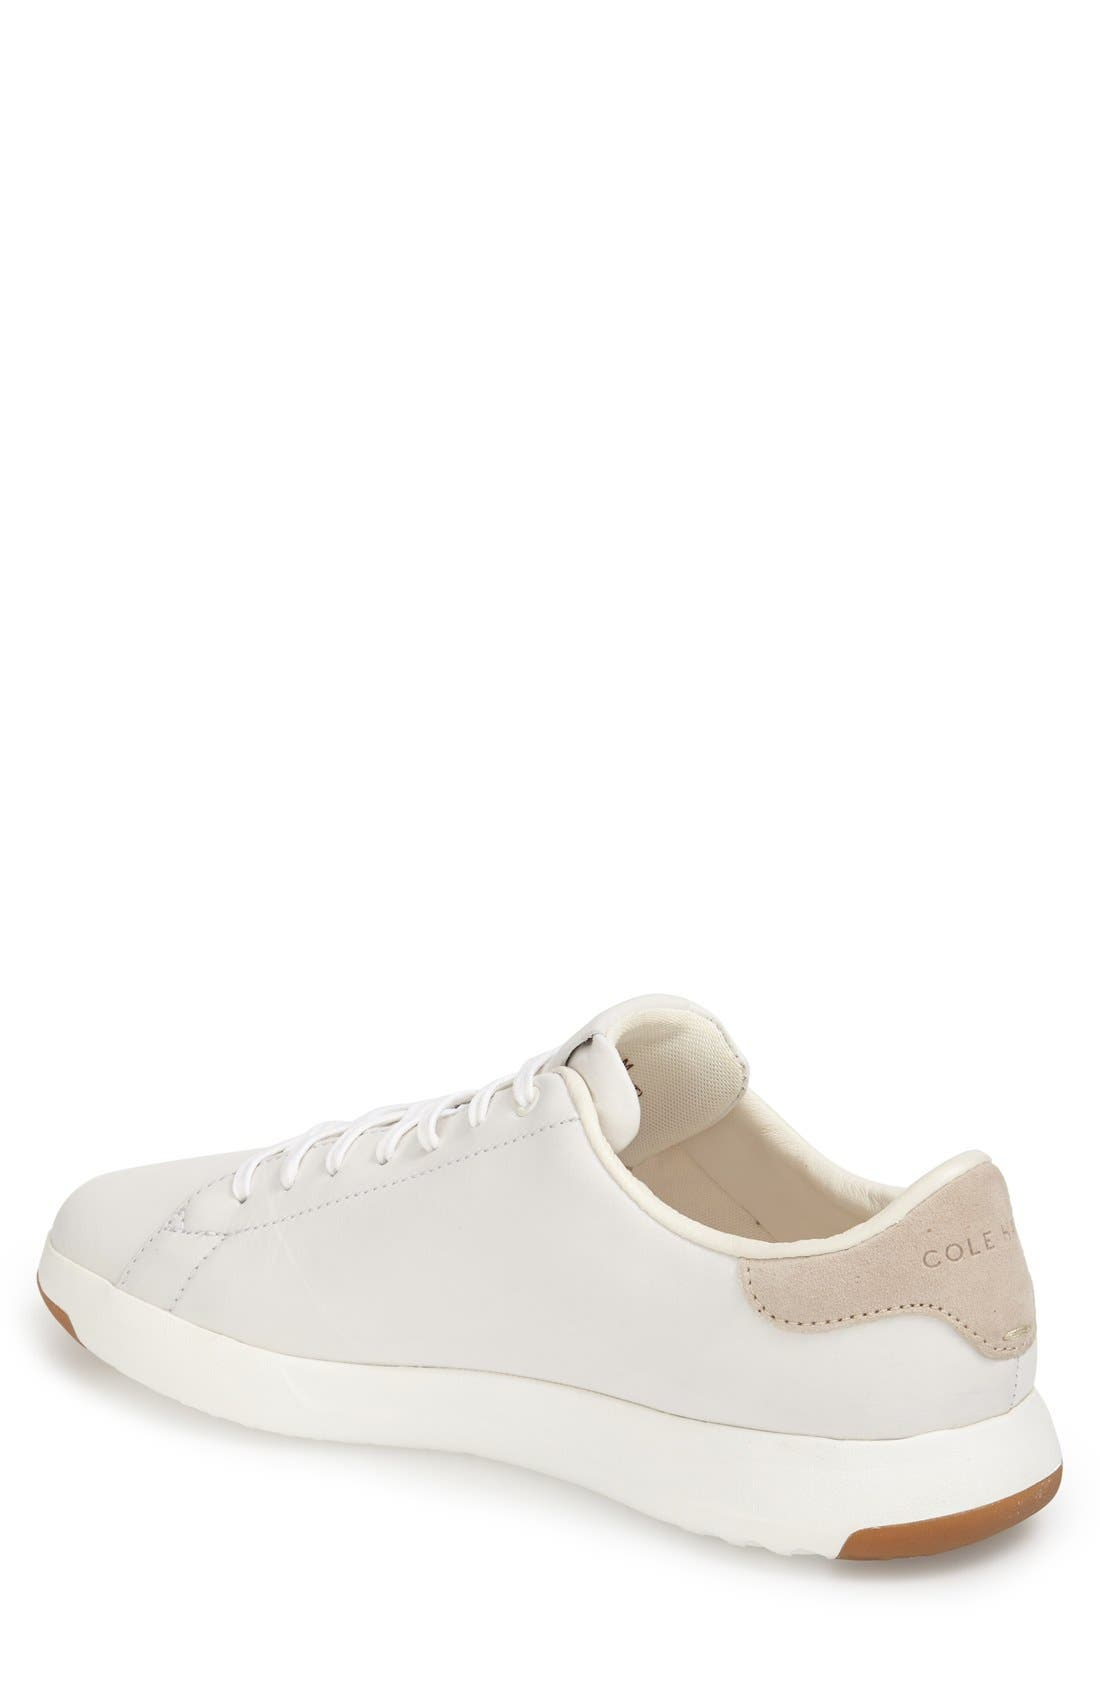 GrandPro Tennis Sneaker,                             Alternate thumbnail 2, color,                             White